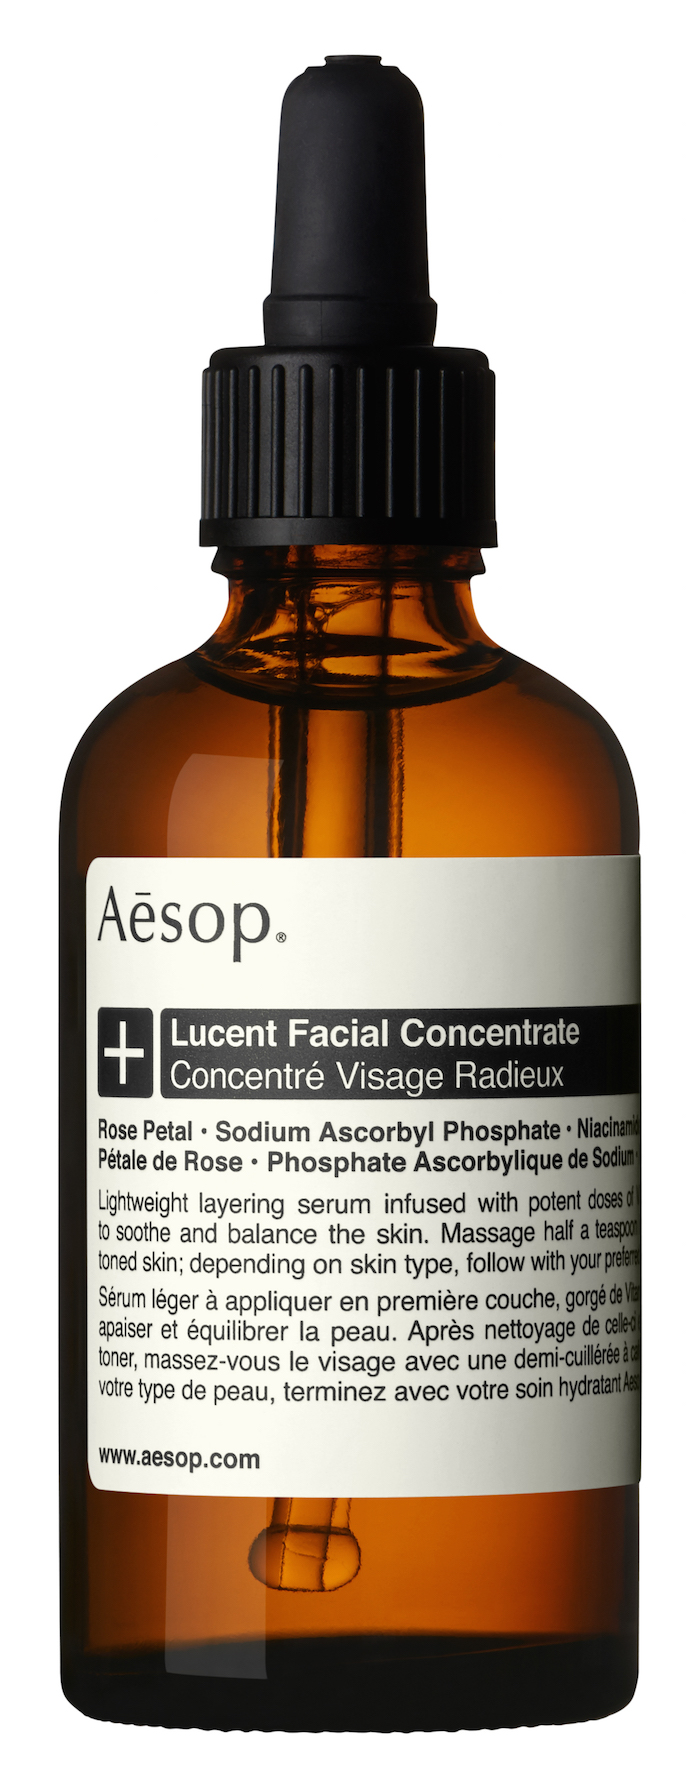 AESOP SKIN CARE+ LUCENT FACIAL CONCENTRATE 60mL C